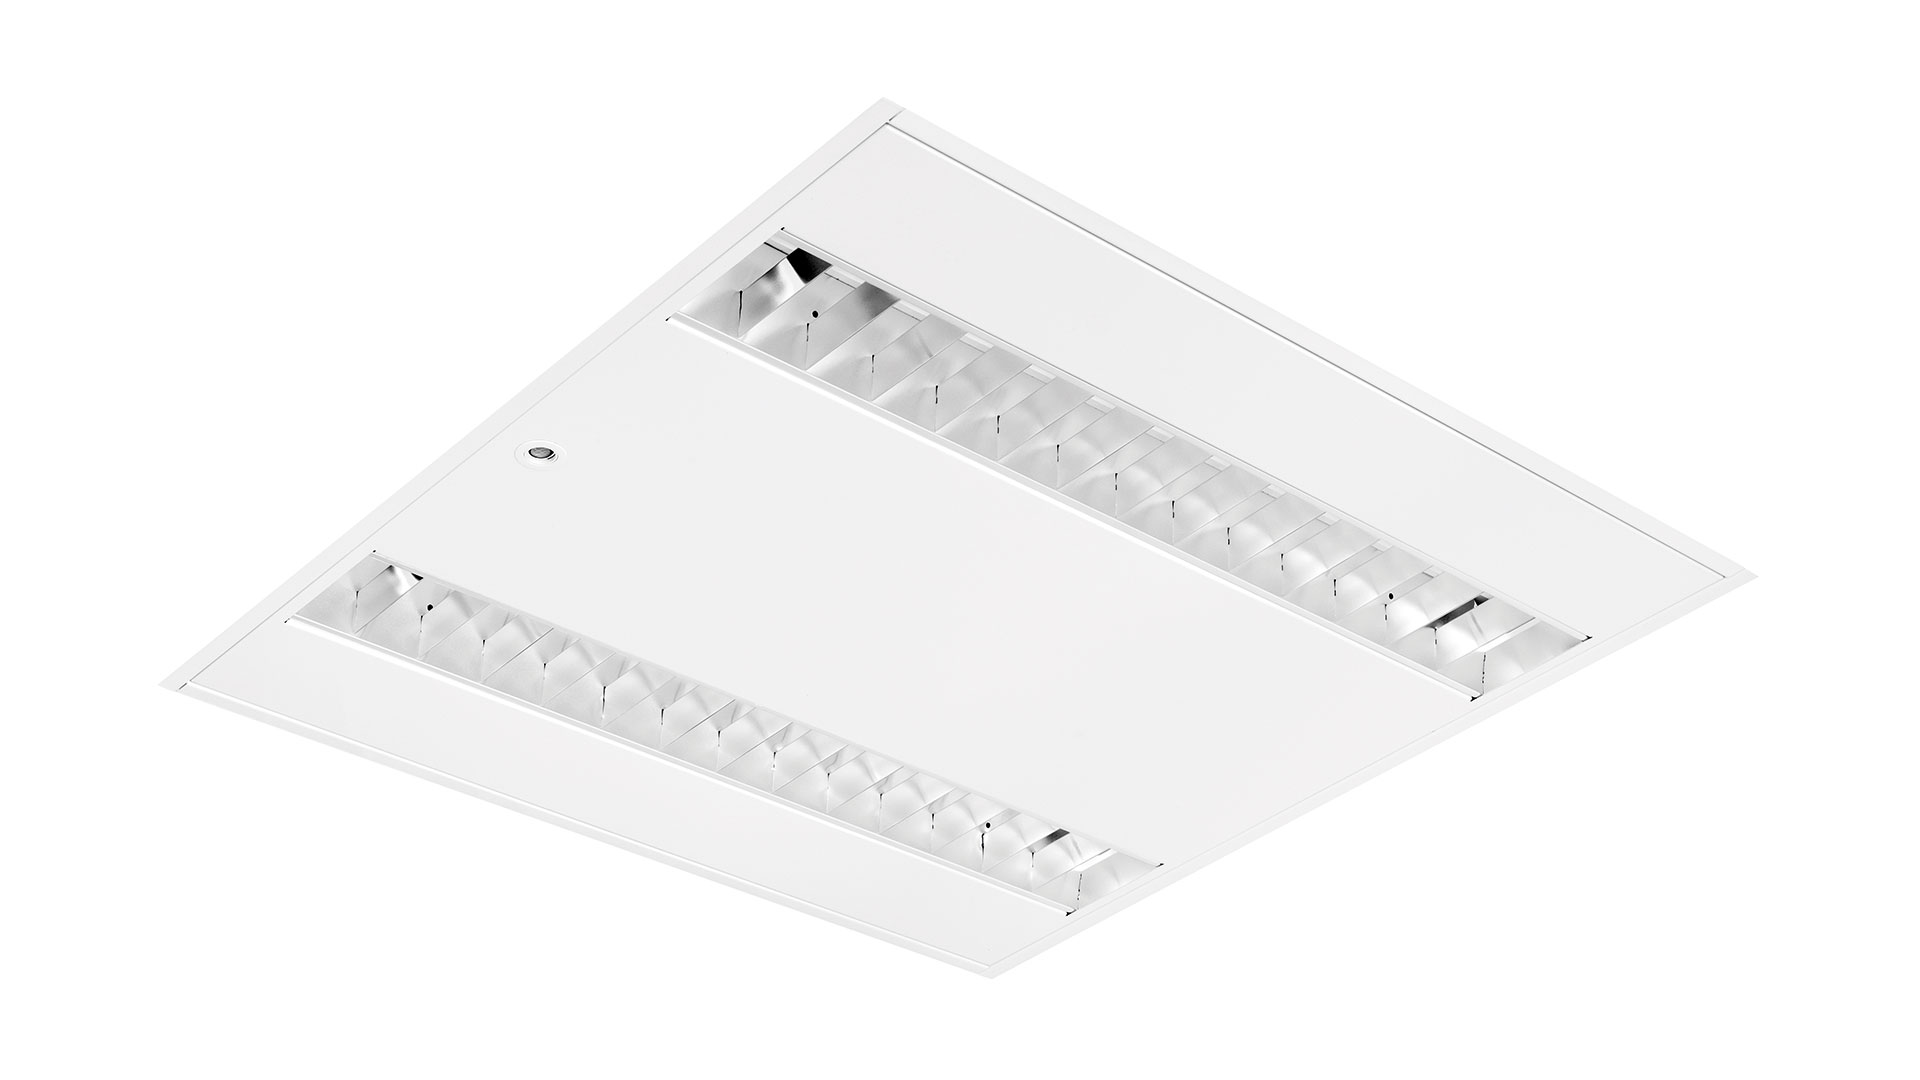 Image of product type  RELAX AA / A2 / A1 / A8 LED S+